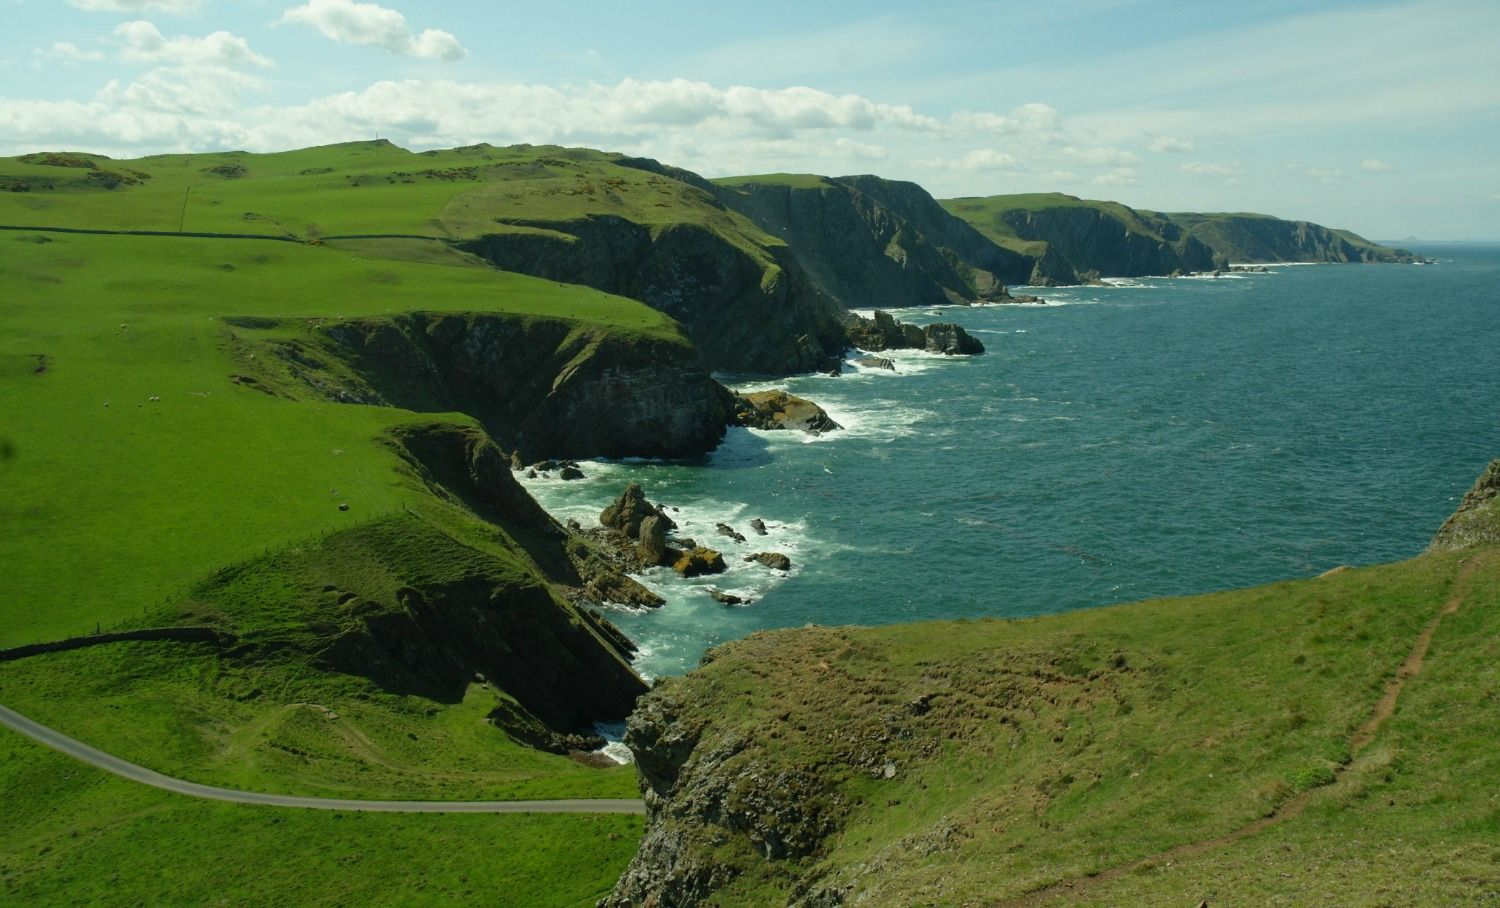 Looking up the coast from St Abb's Head in the Scottish Borders. It's green, green, so green! The lighthouse access road, bottom left, was used for the chase scene where Captain Waggett follows the islanders' whisky-laden lorry.